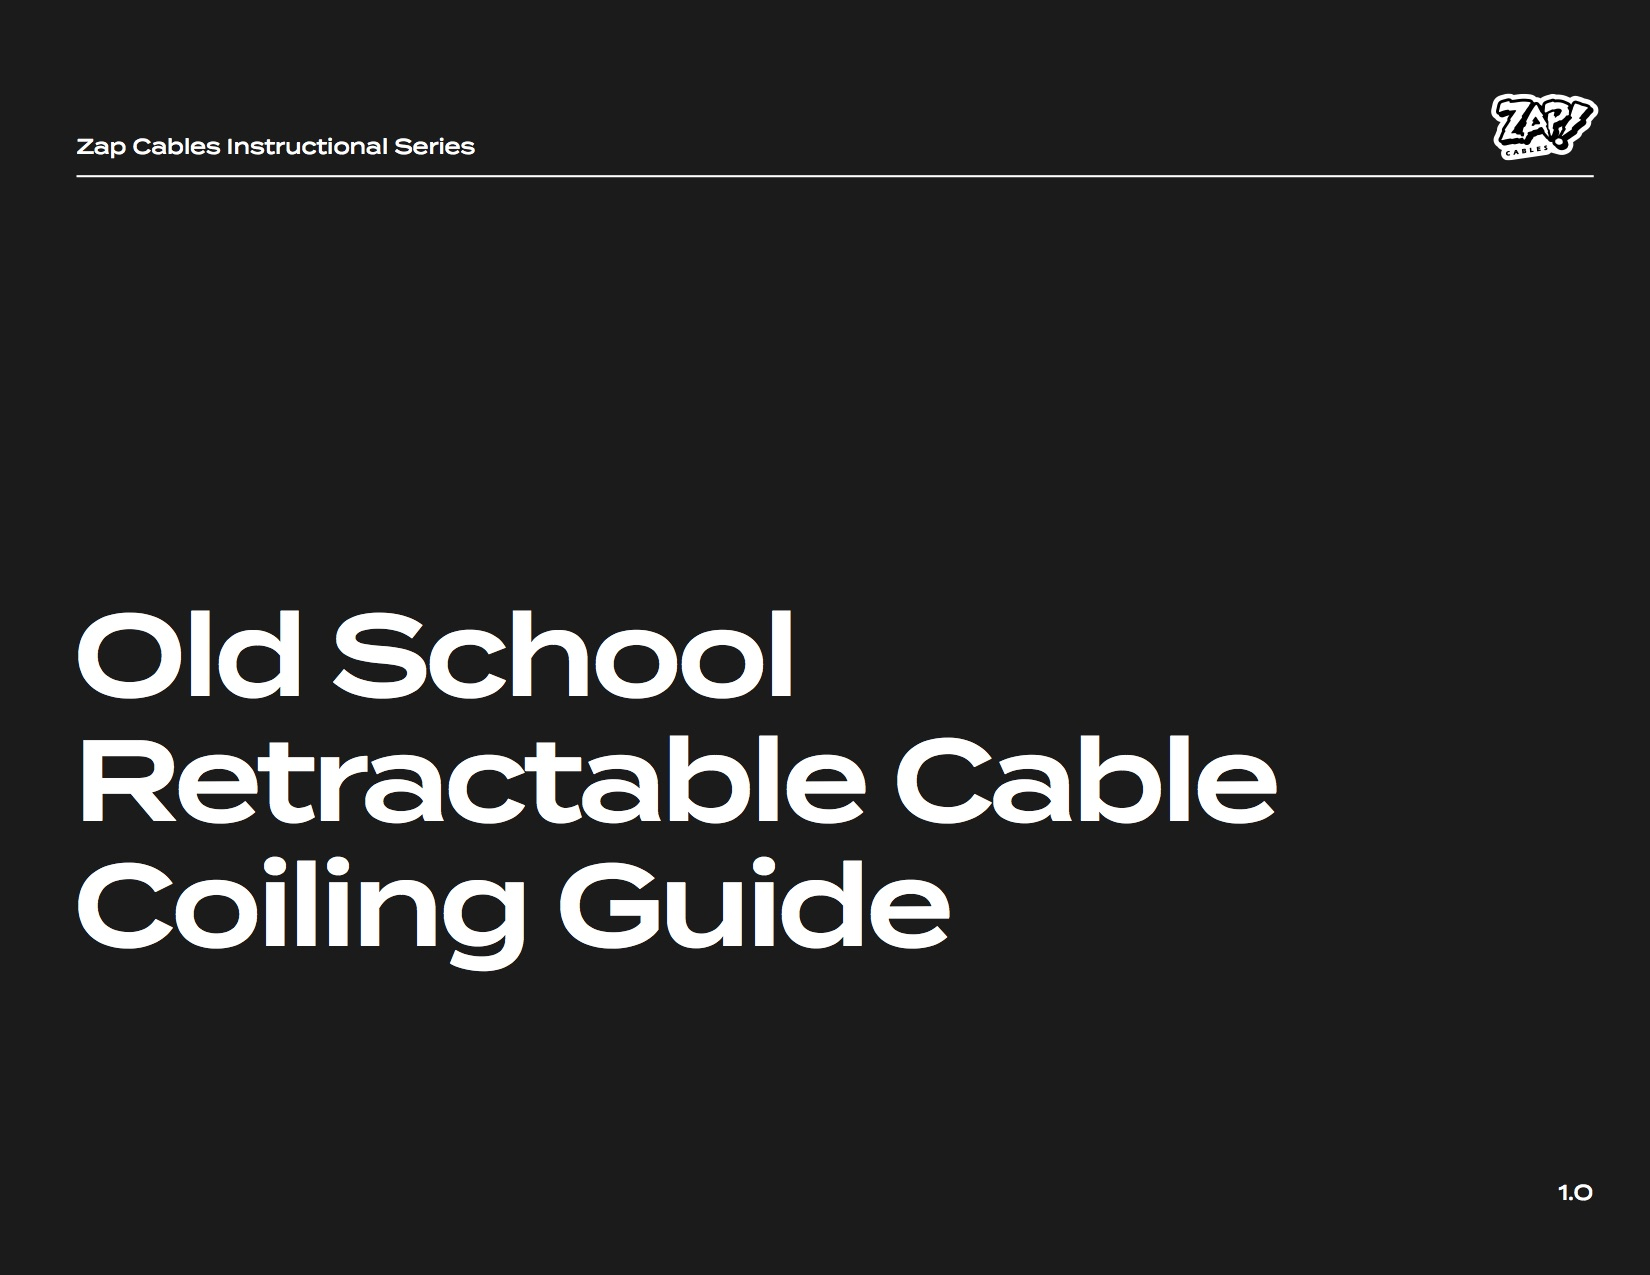 Old School Cable Coiling Guide cover image